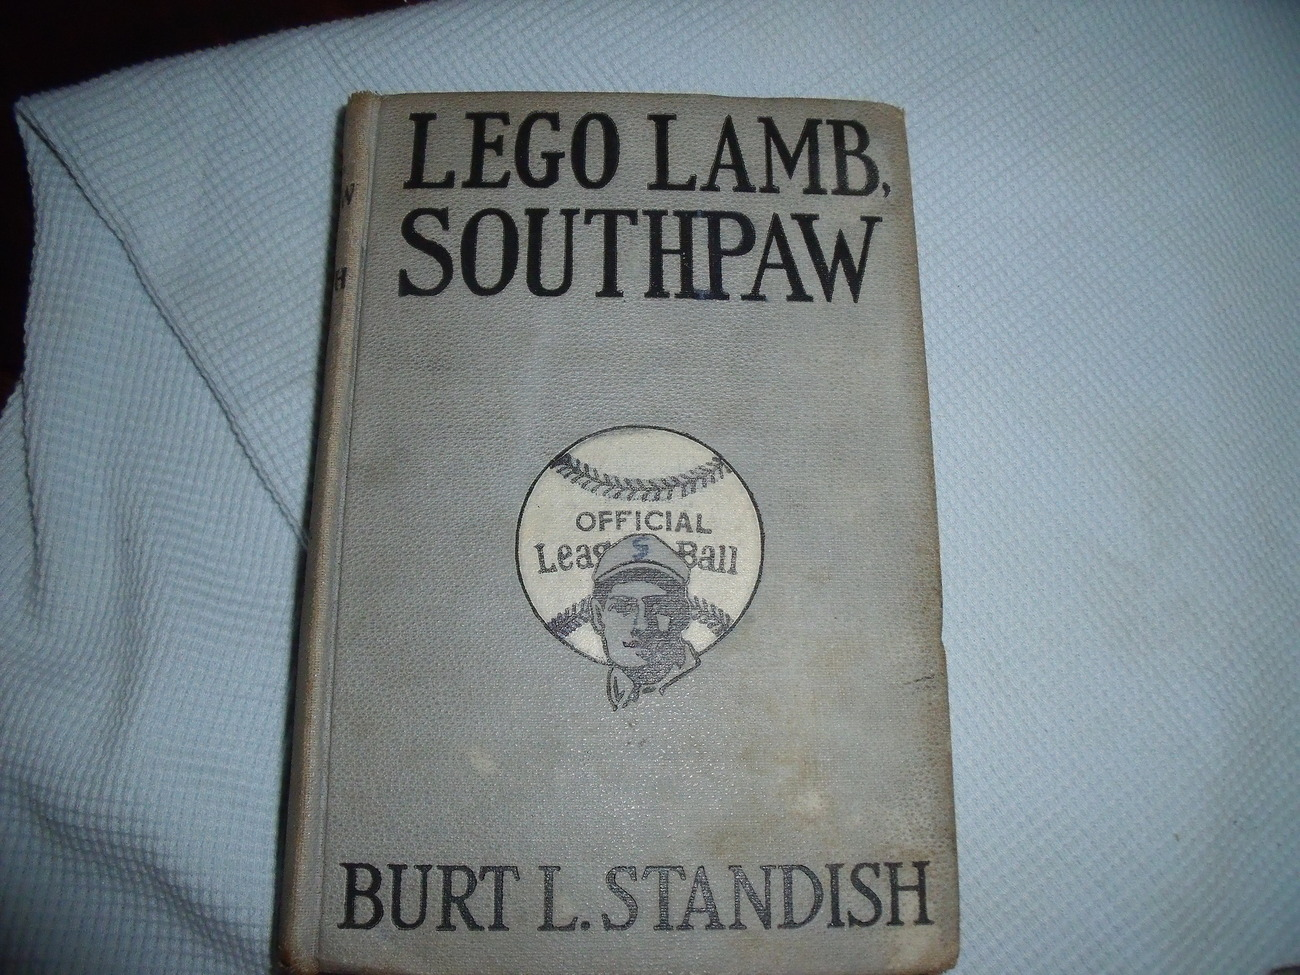 Lego Lamb, Southpaw By Burt L. Standish first edition 1923